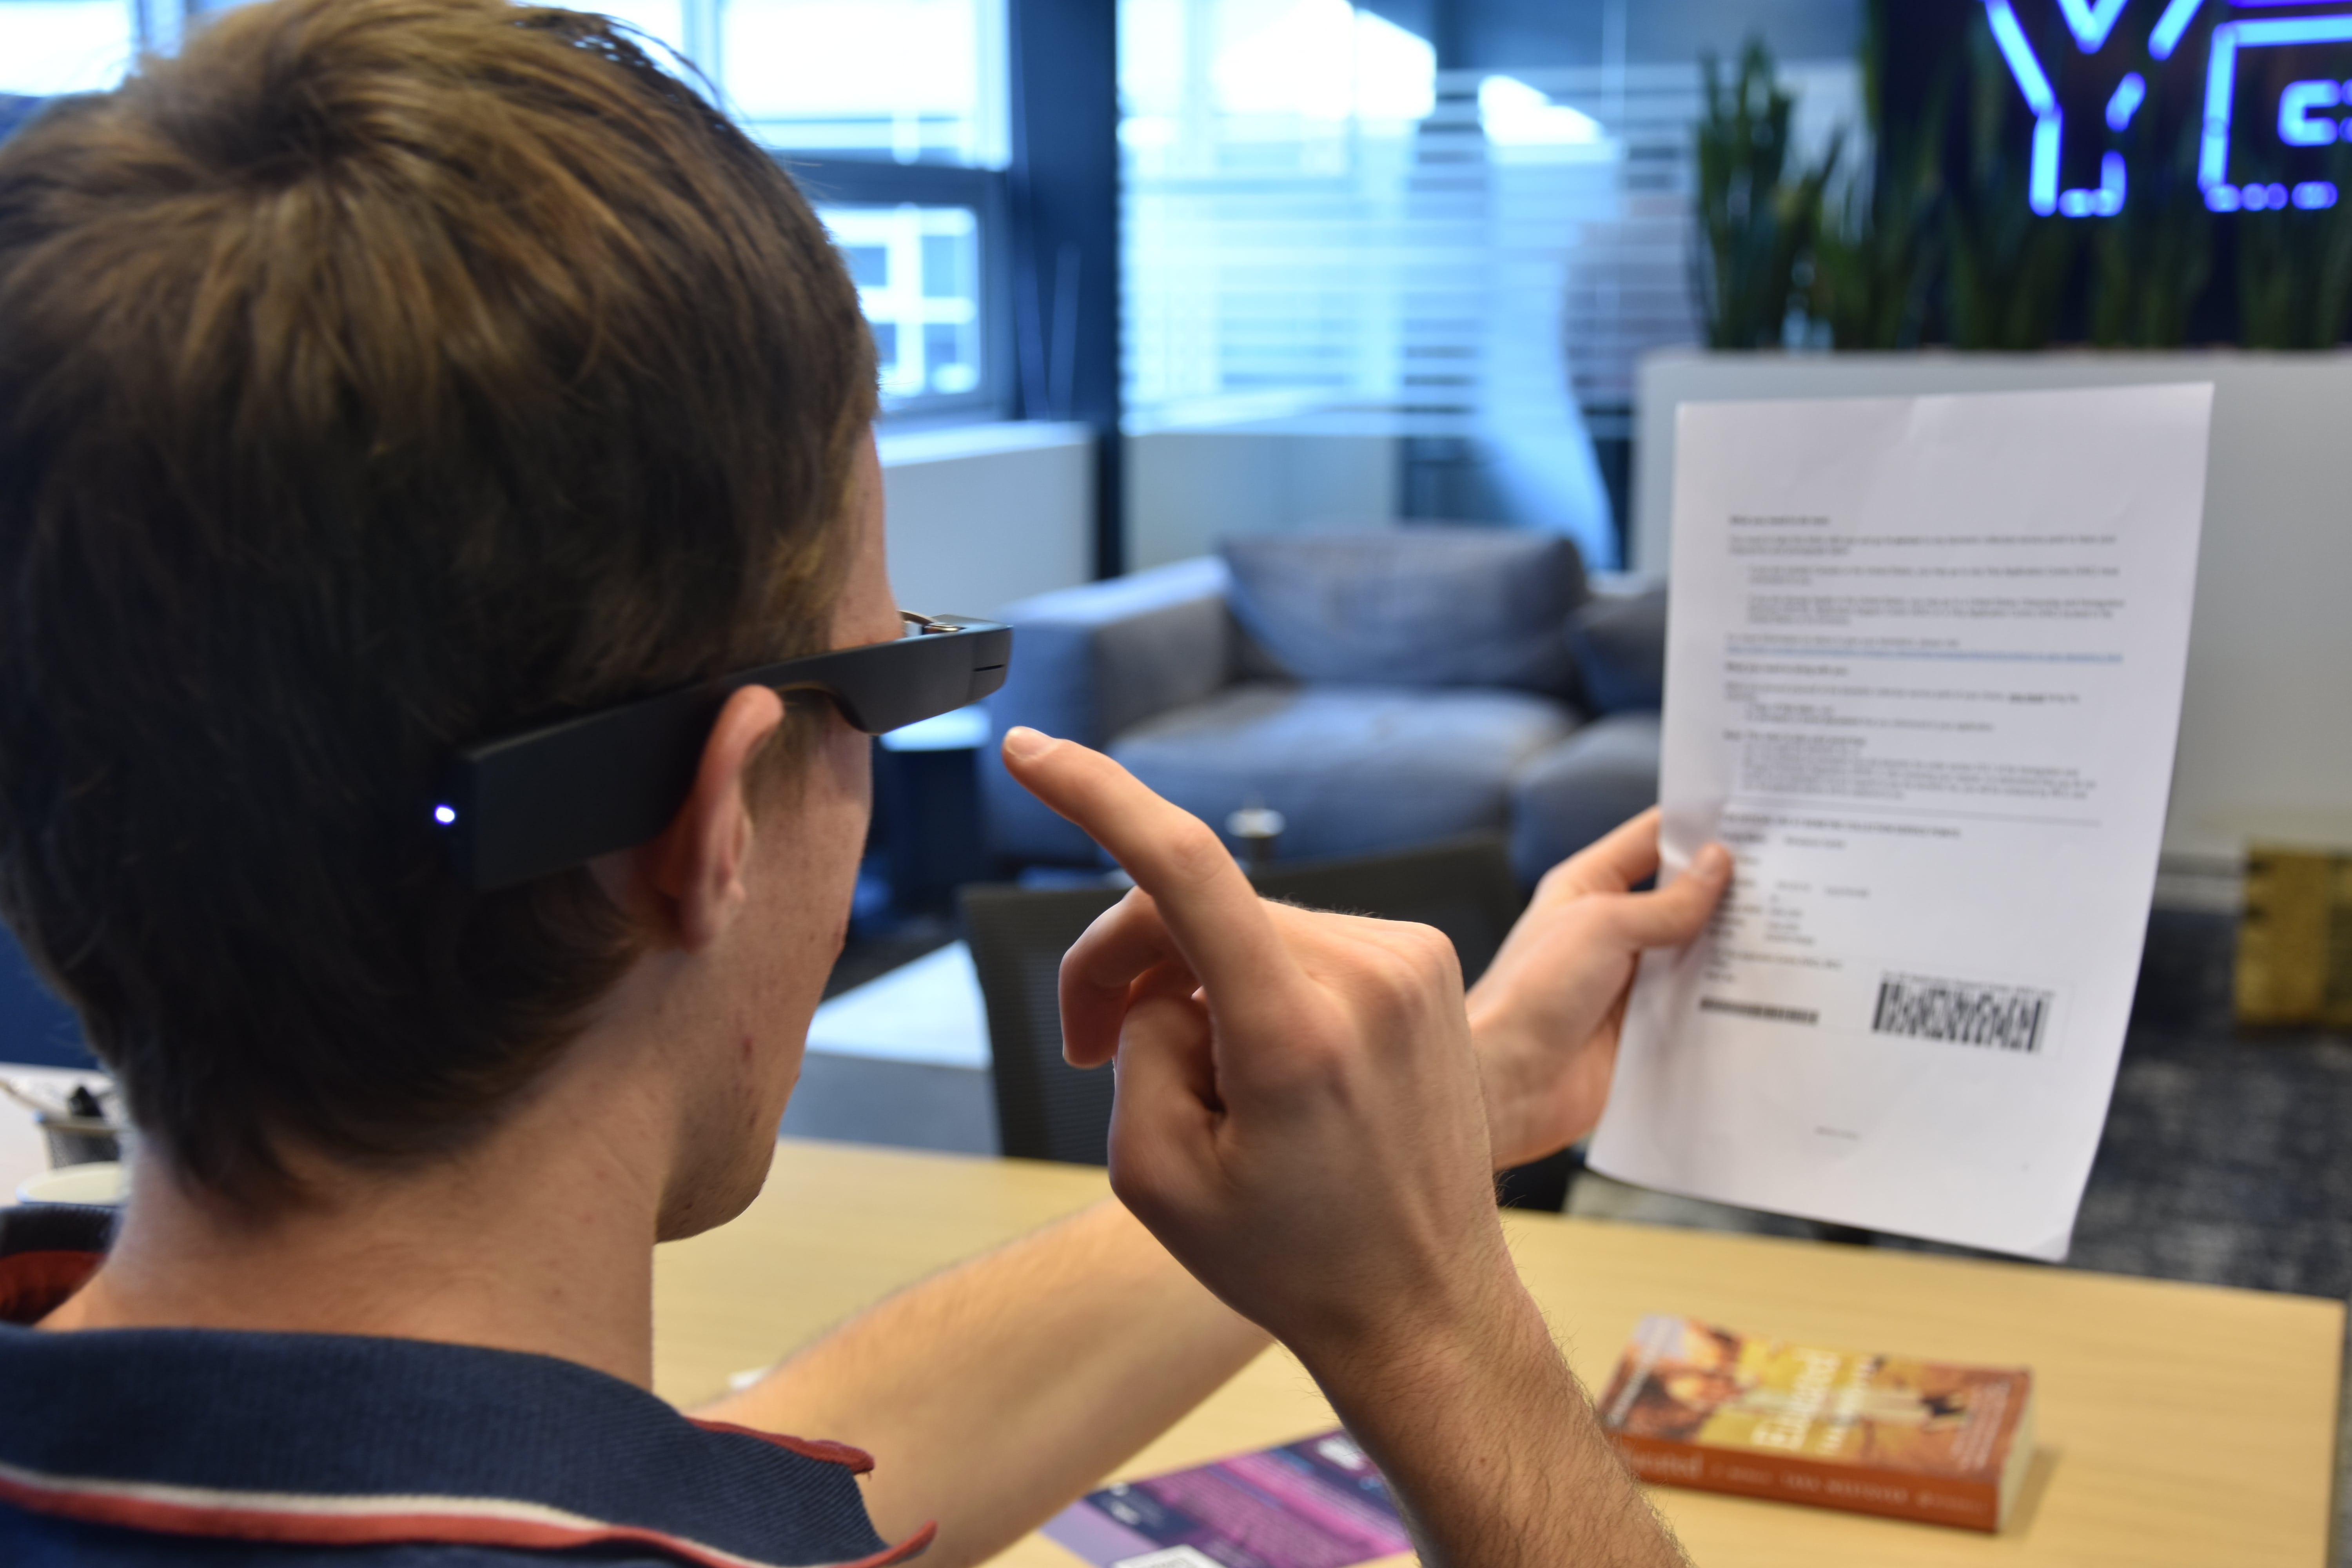 A user reading a document in his hand by tapping the touchpad of the Google Glass